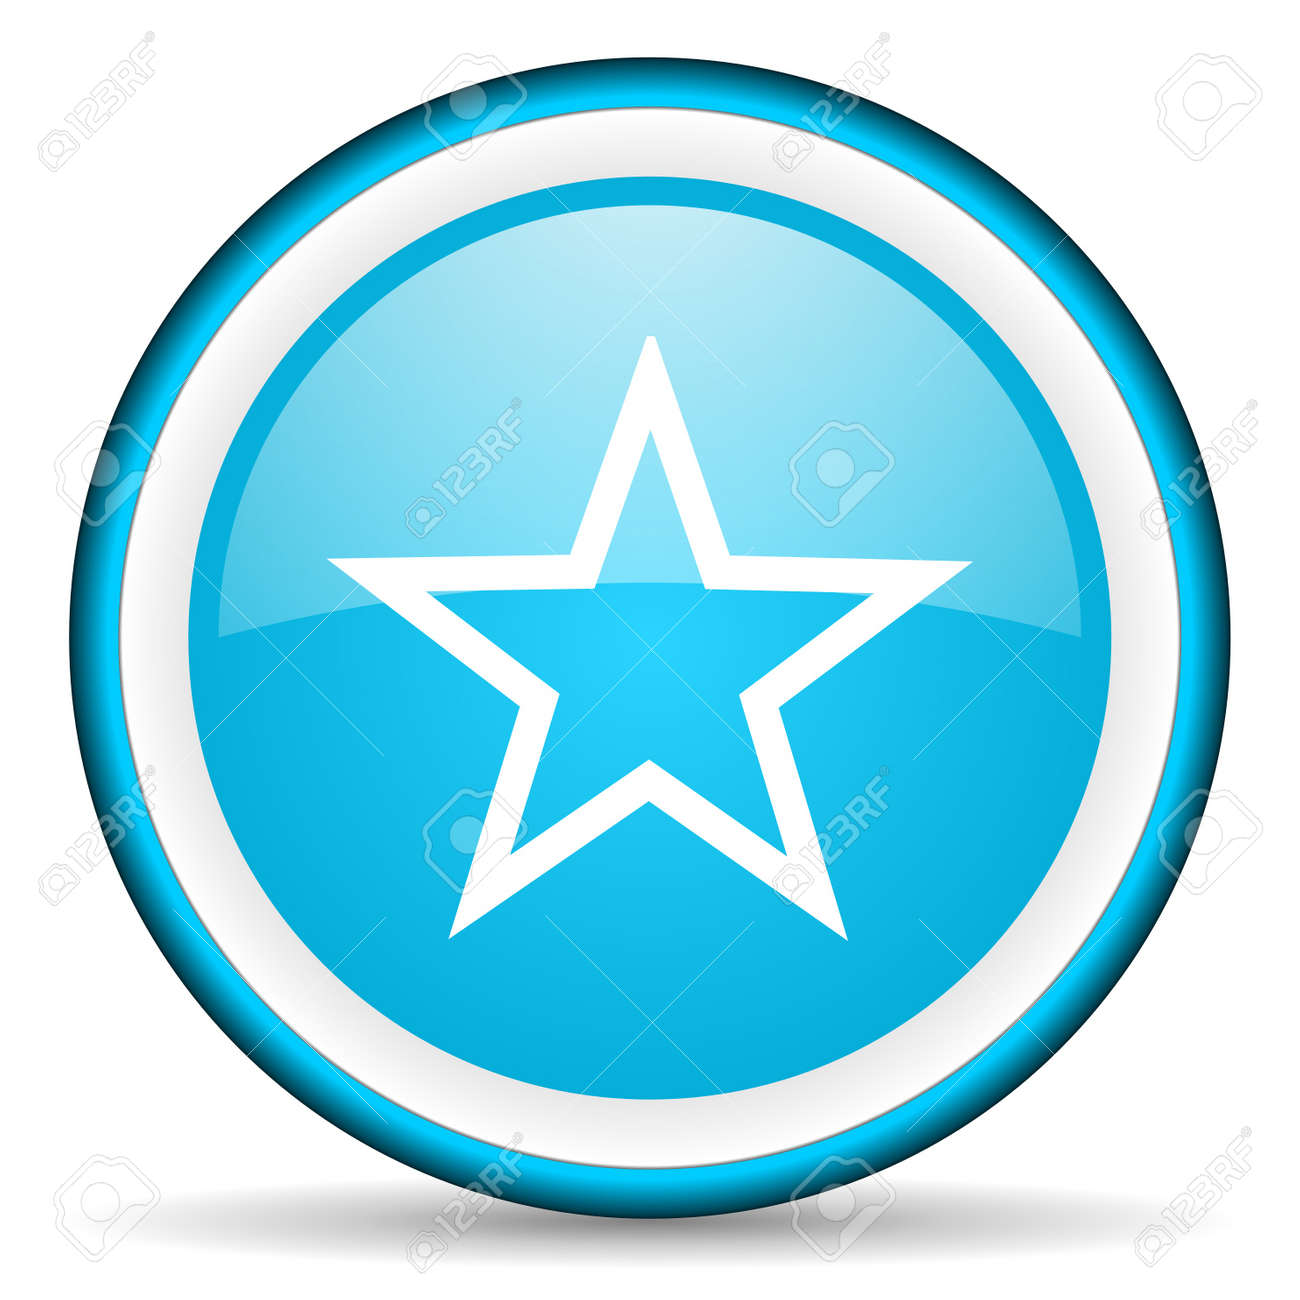 star blue glossy icon on white background Stock Photo - 17066399